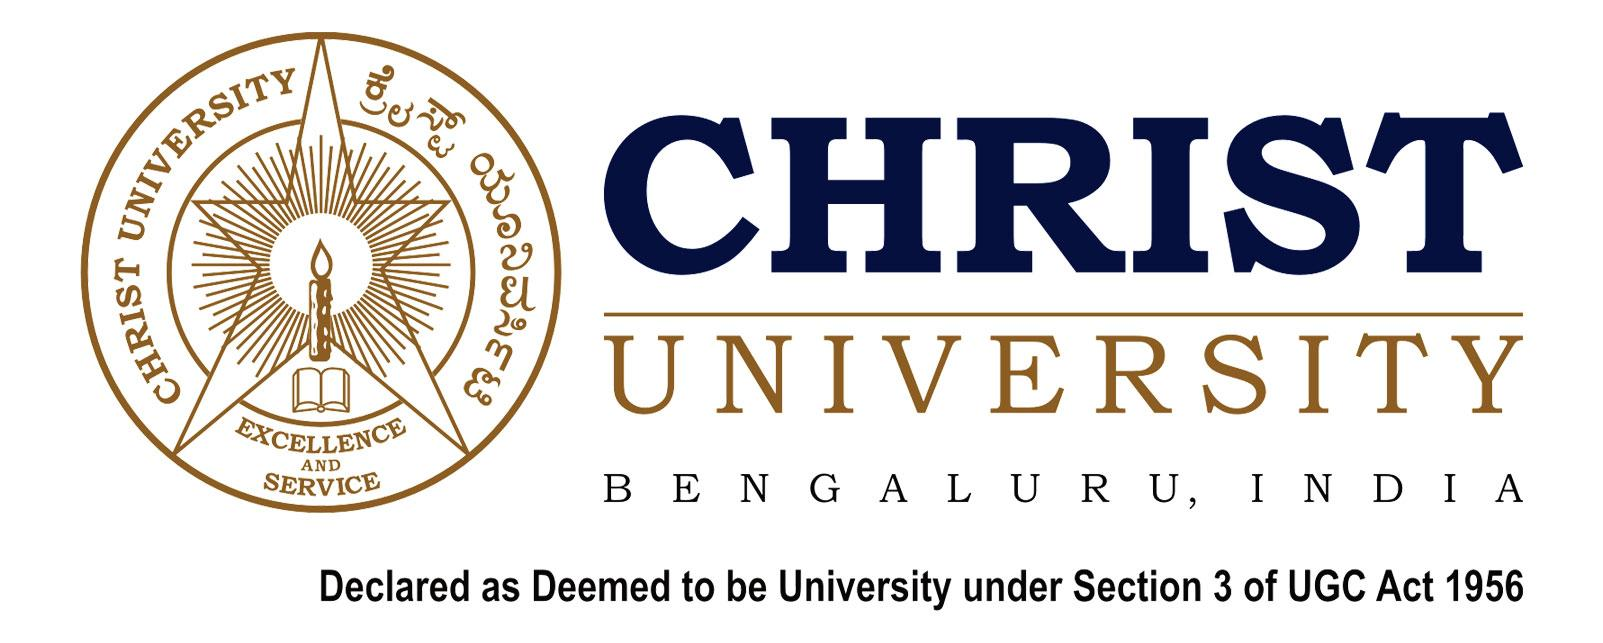 Call for Papers: Service-Learning: An Emerging Experiential Learning Process in India [July 6-7, Bangalore]: Submit by May 15